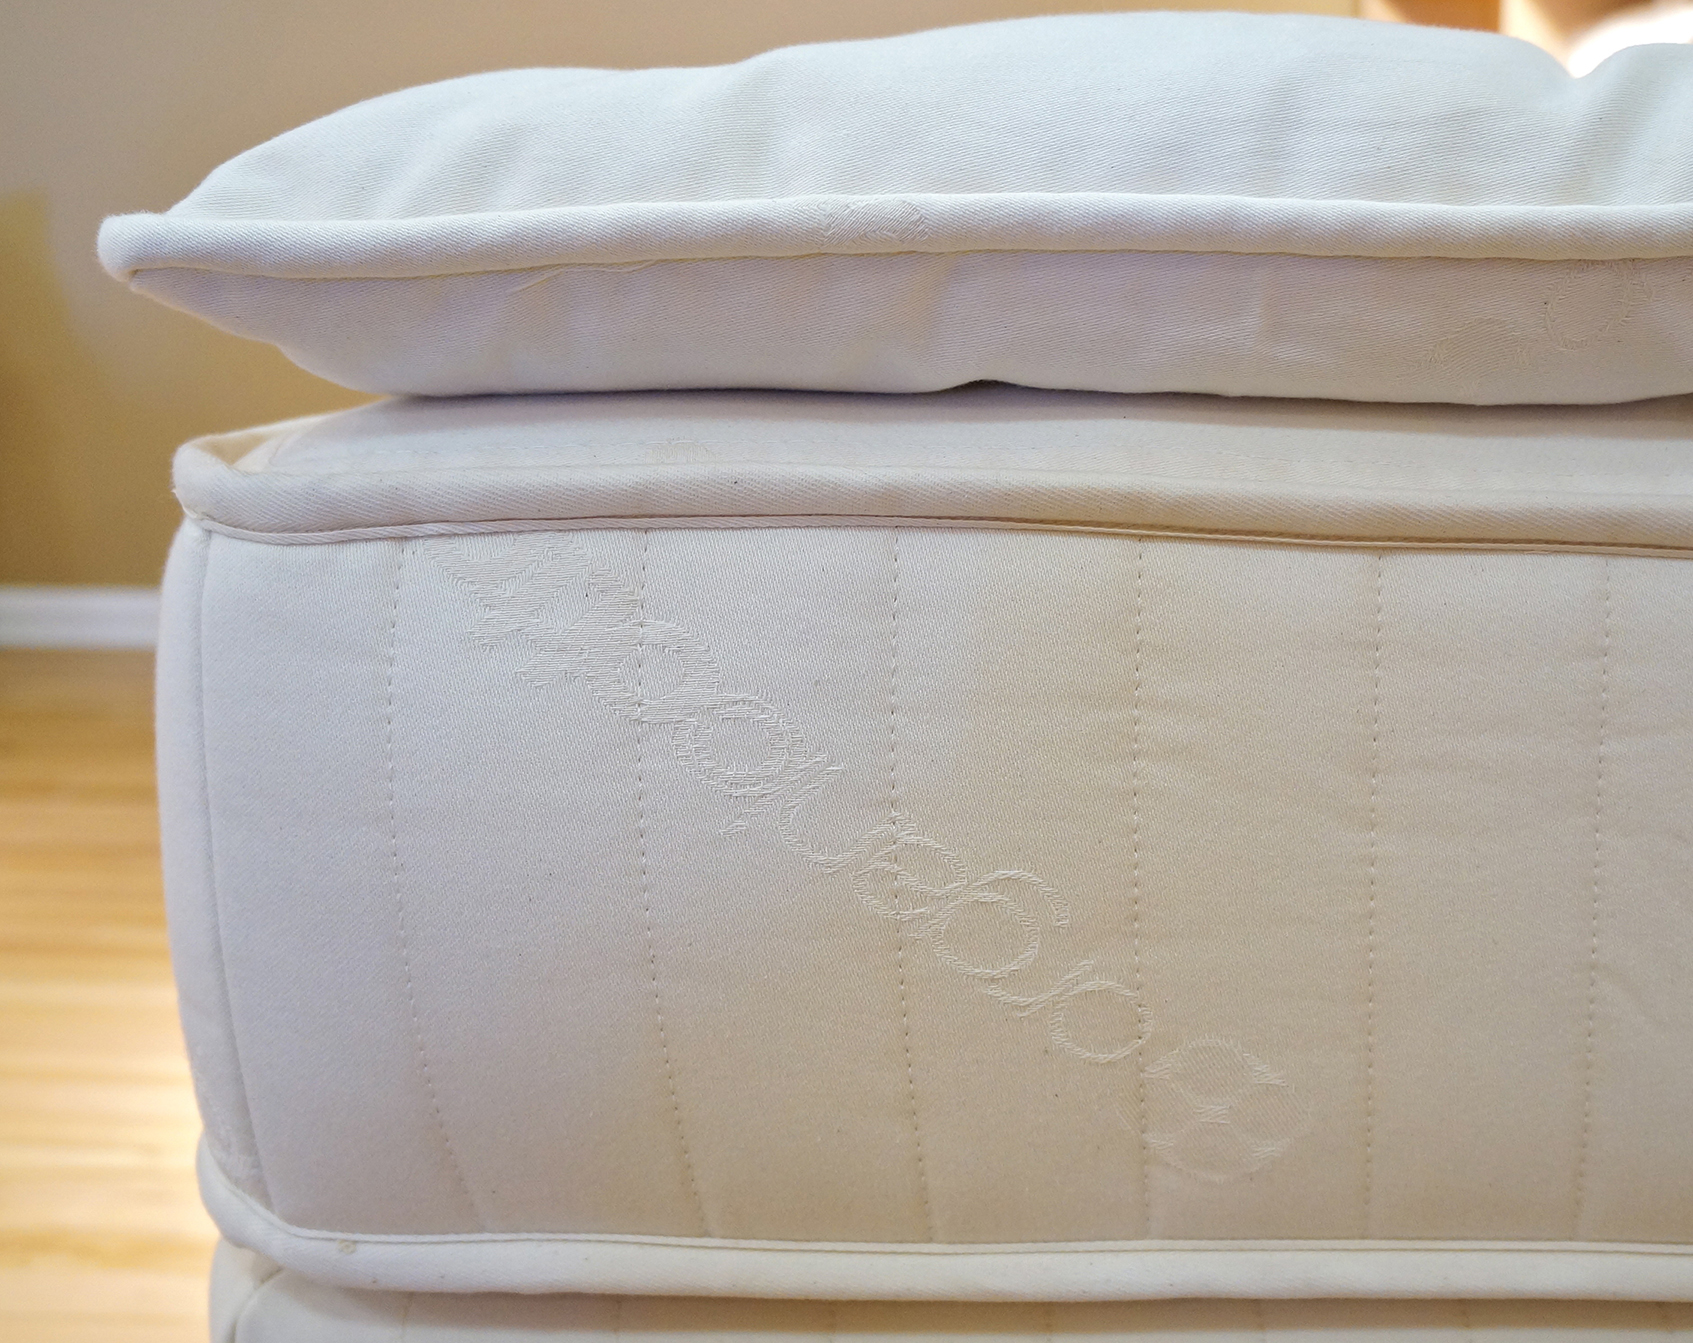 Materials used in all Sleeptek natural and organic mattresses